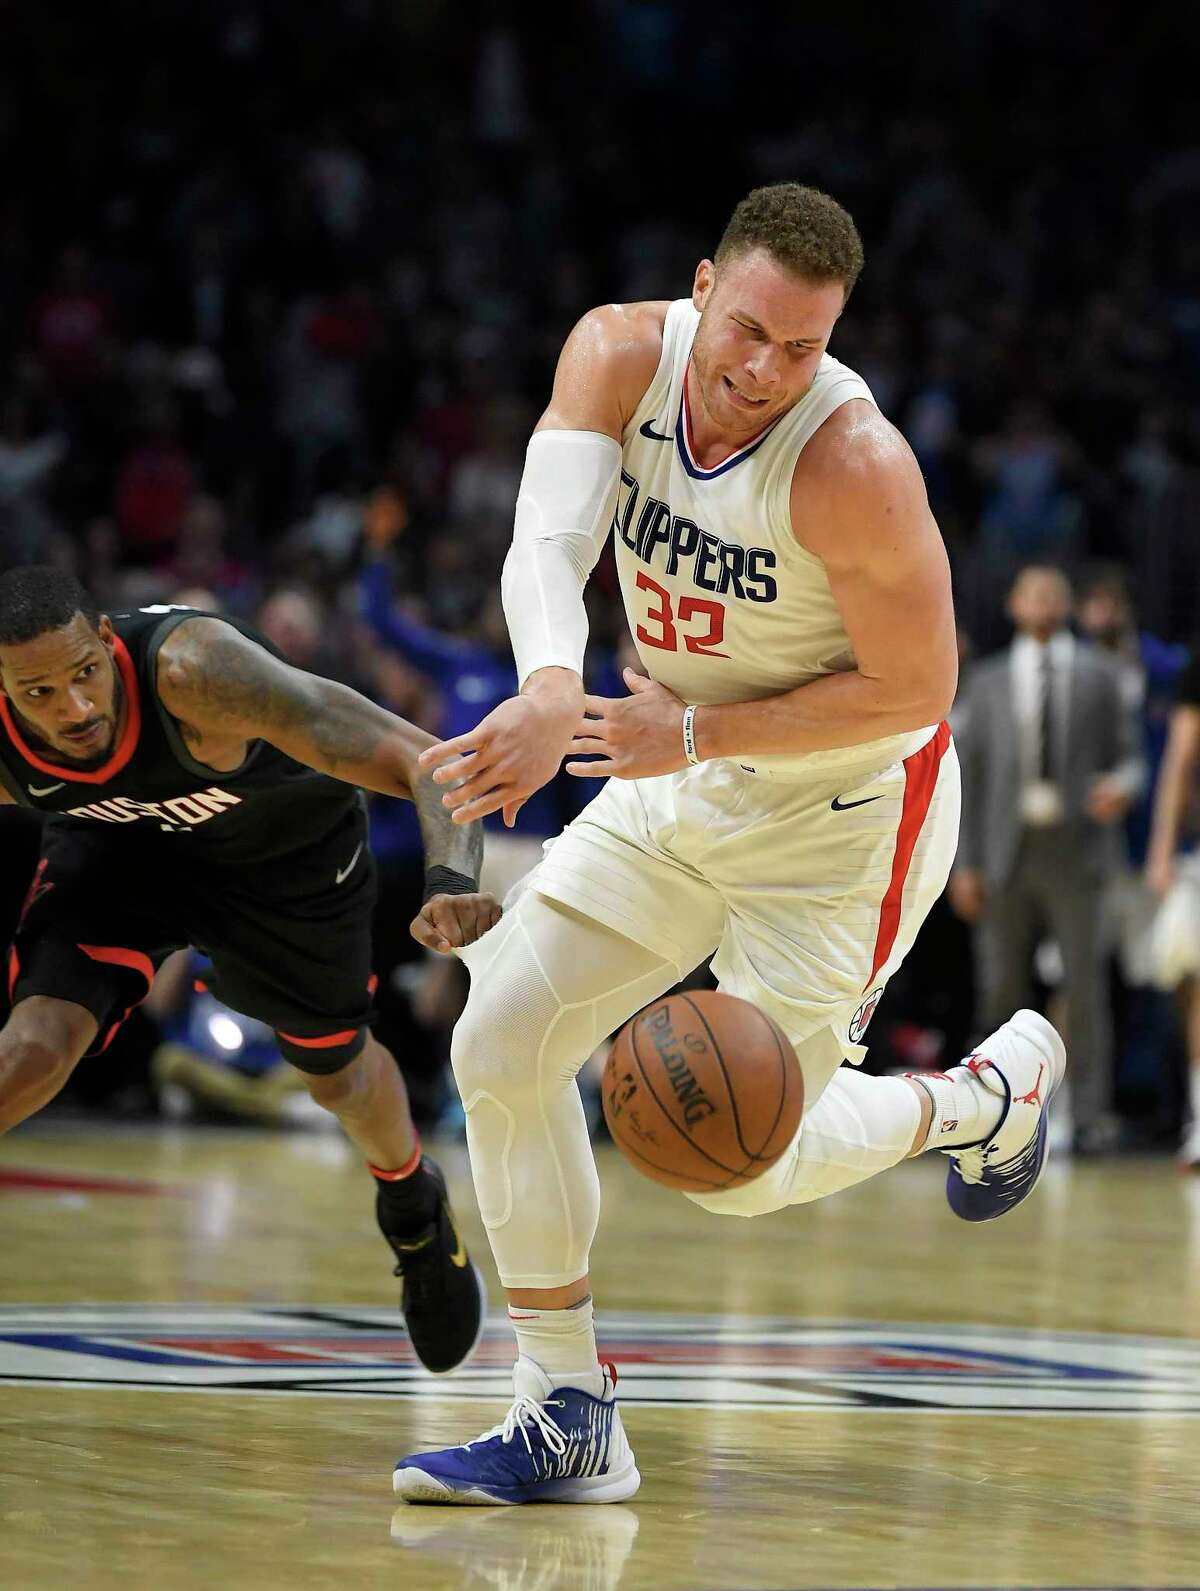 Houston Rockets forward Trevor Ariza, left, pulls and rips the uniform of Los Angeles Clippers forward Blake Griffin during the second half of an NBA basketball game, Monday, Jan. 15, 2018, in Los Angeles. The Clippers won 113-102. (AP Photo/Mark J. Terrill)